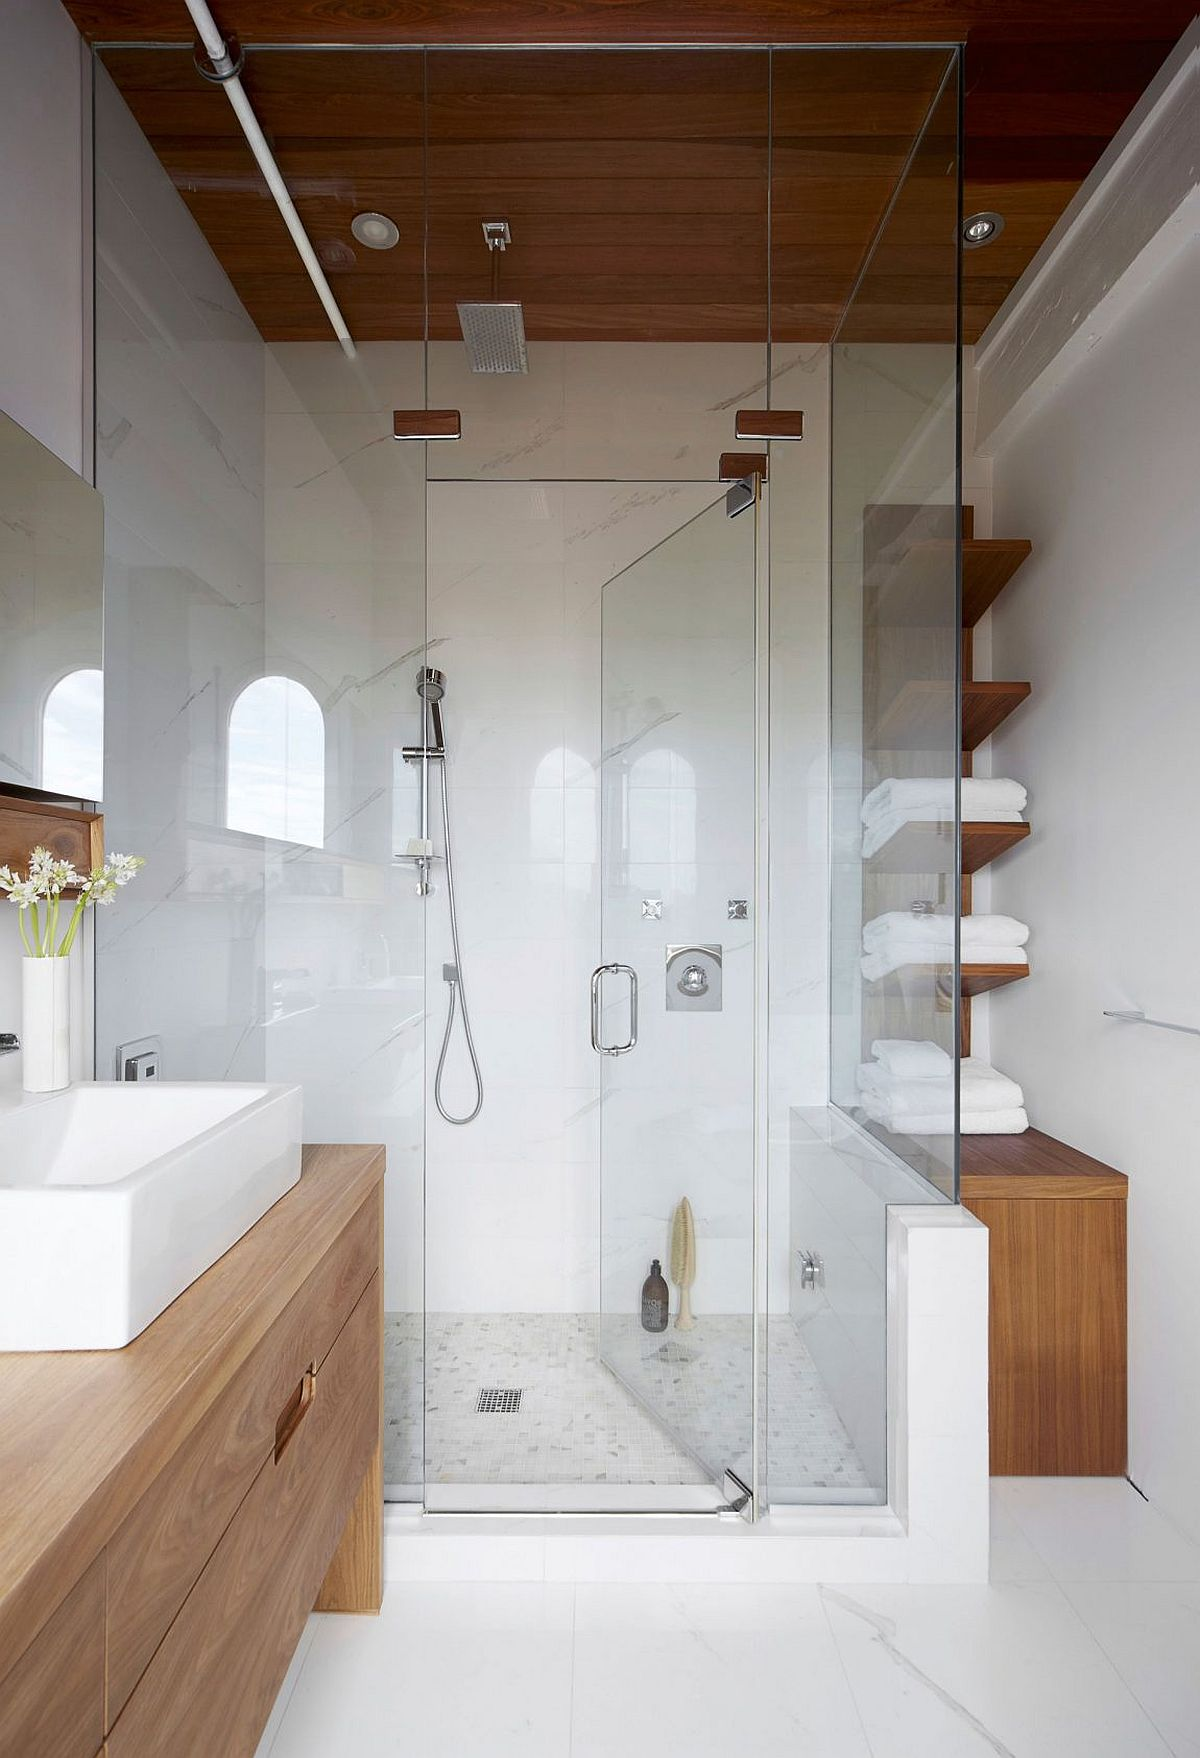 Small glass shower area of the modern bathroom